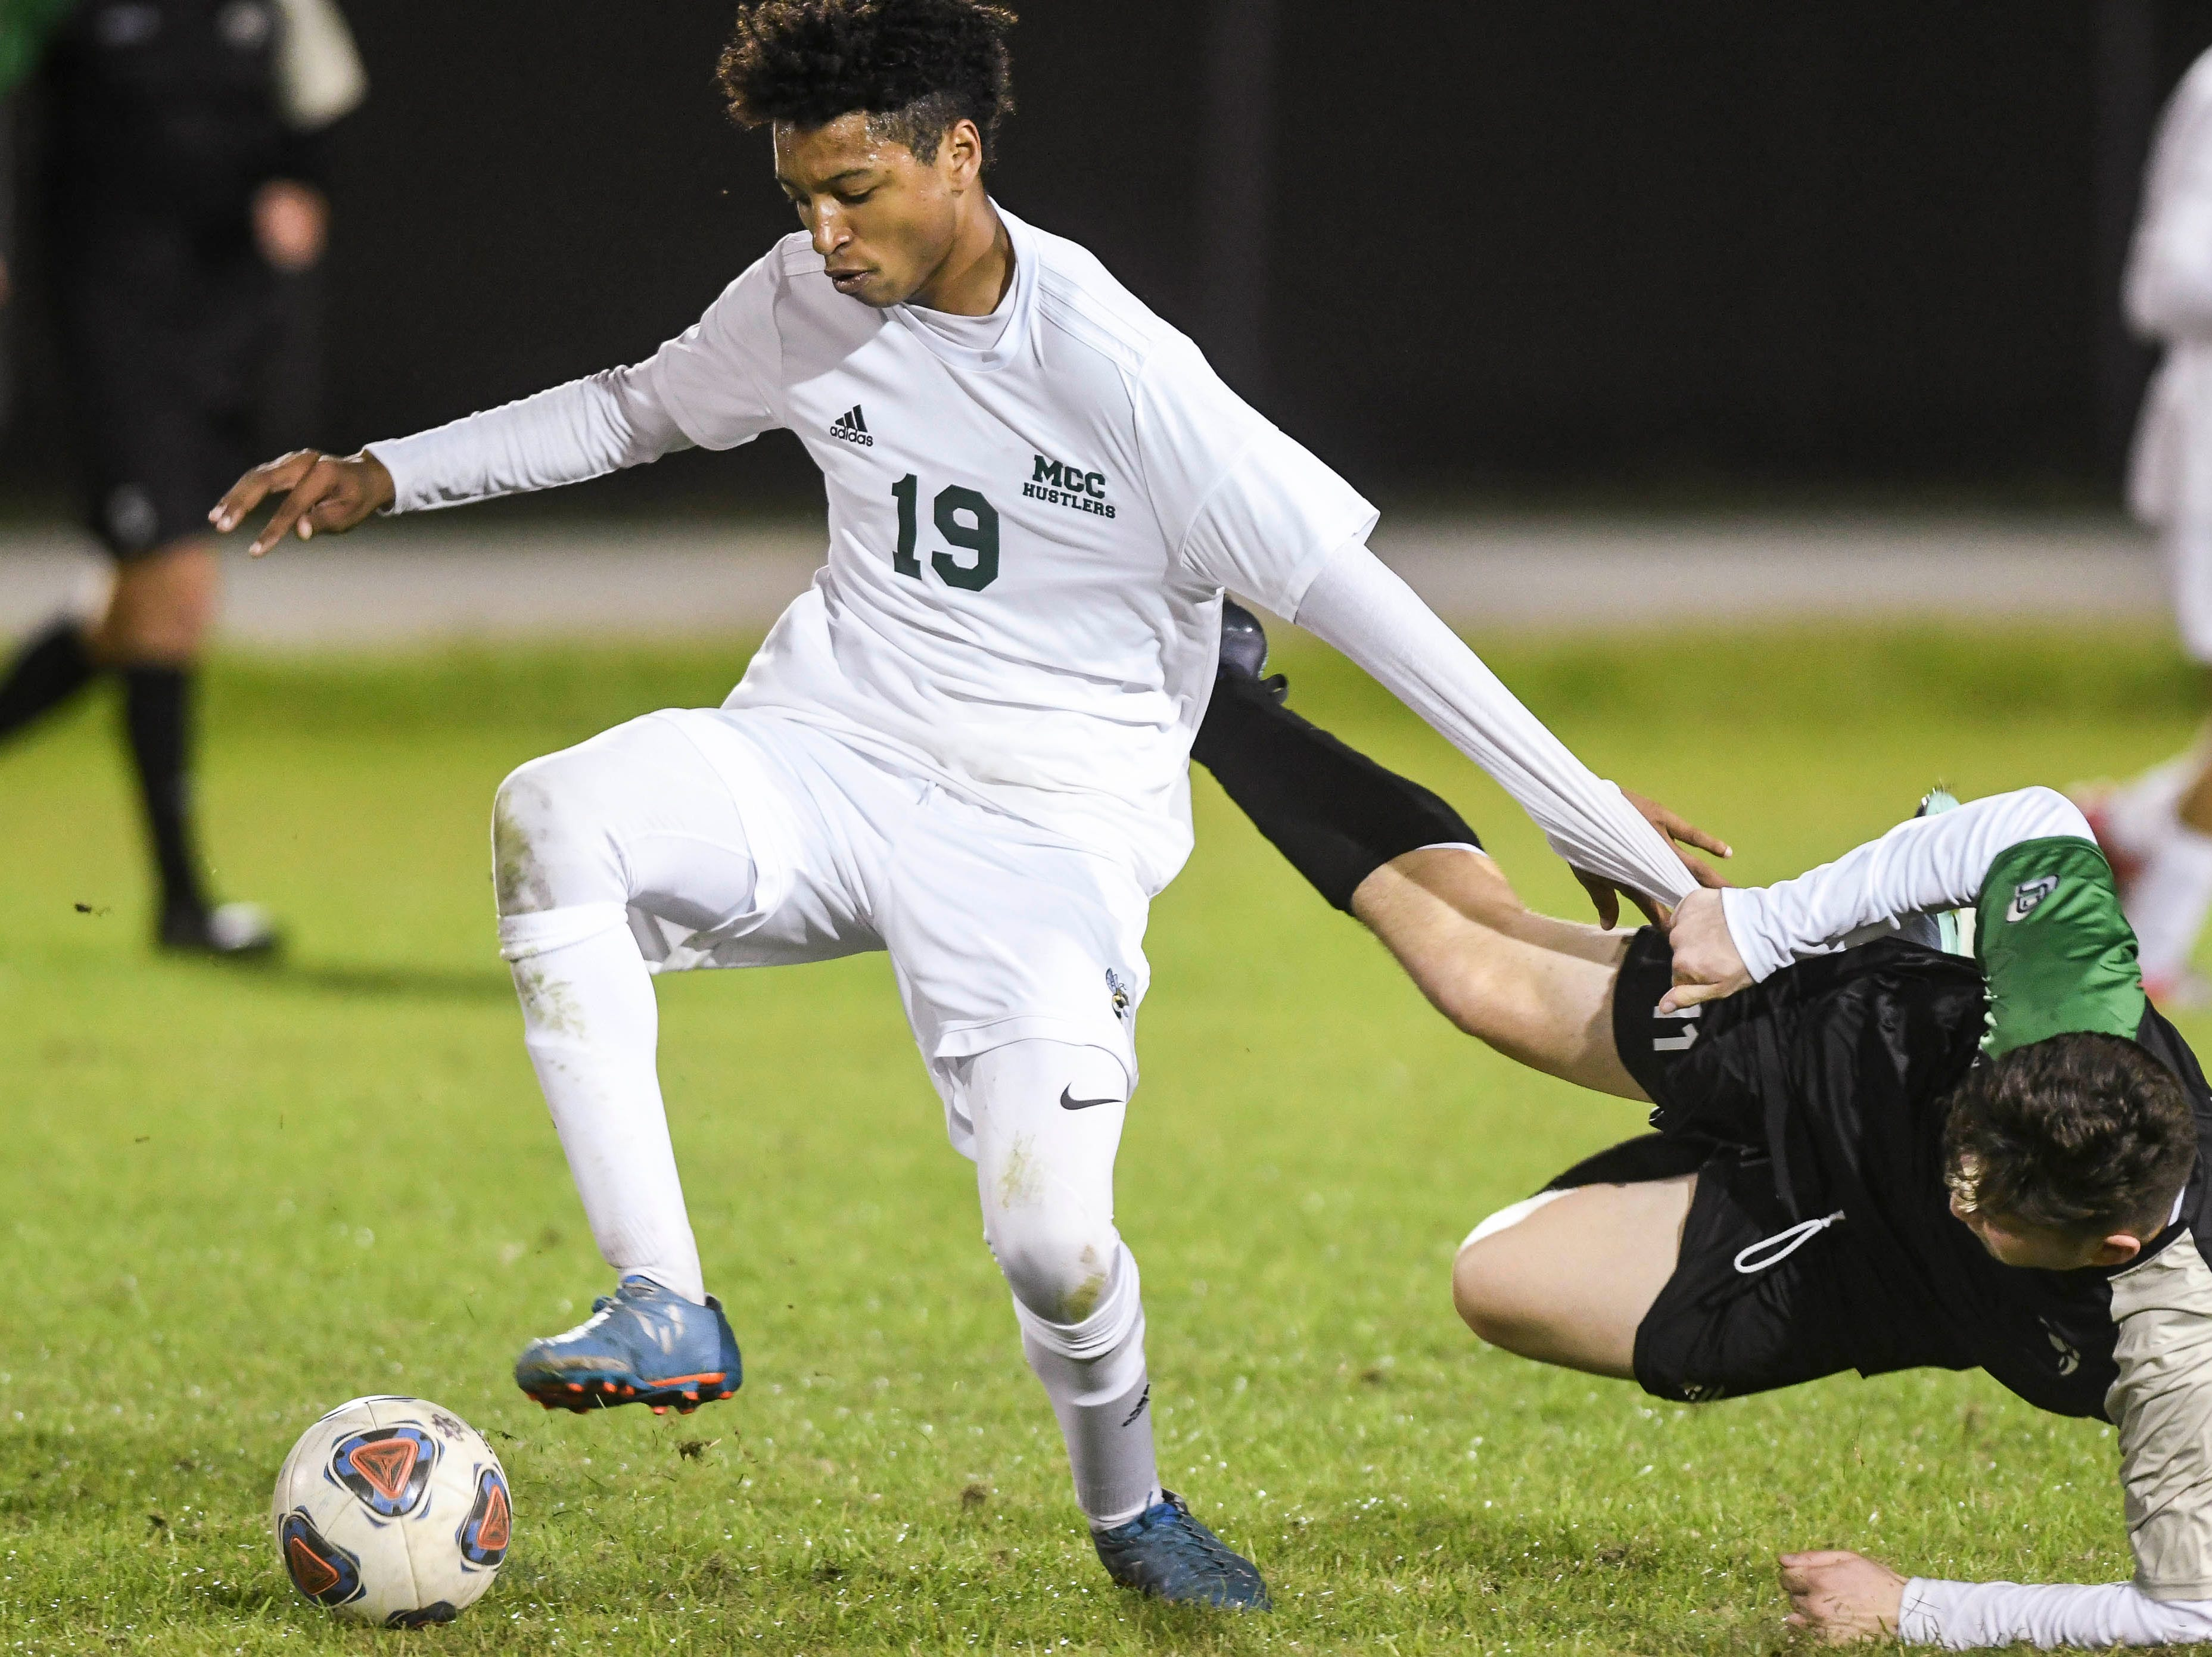 Issac Begin of Melbourne Central Catholic and Christian Becerra of Viera get tangled up during friday's Game in Viera.